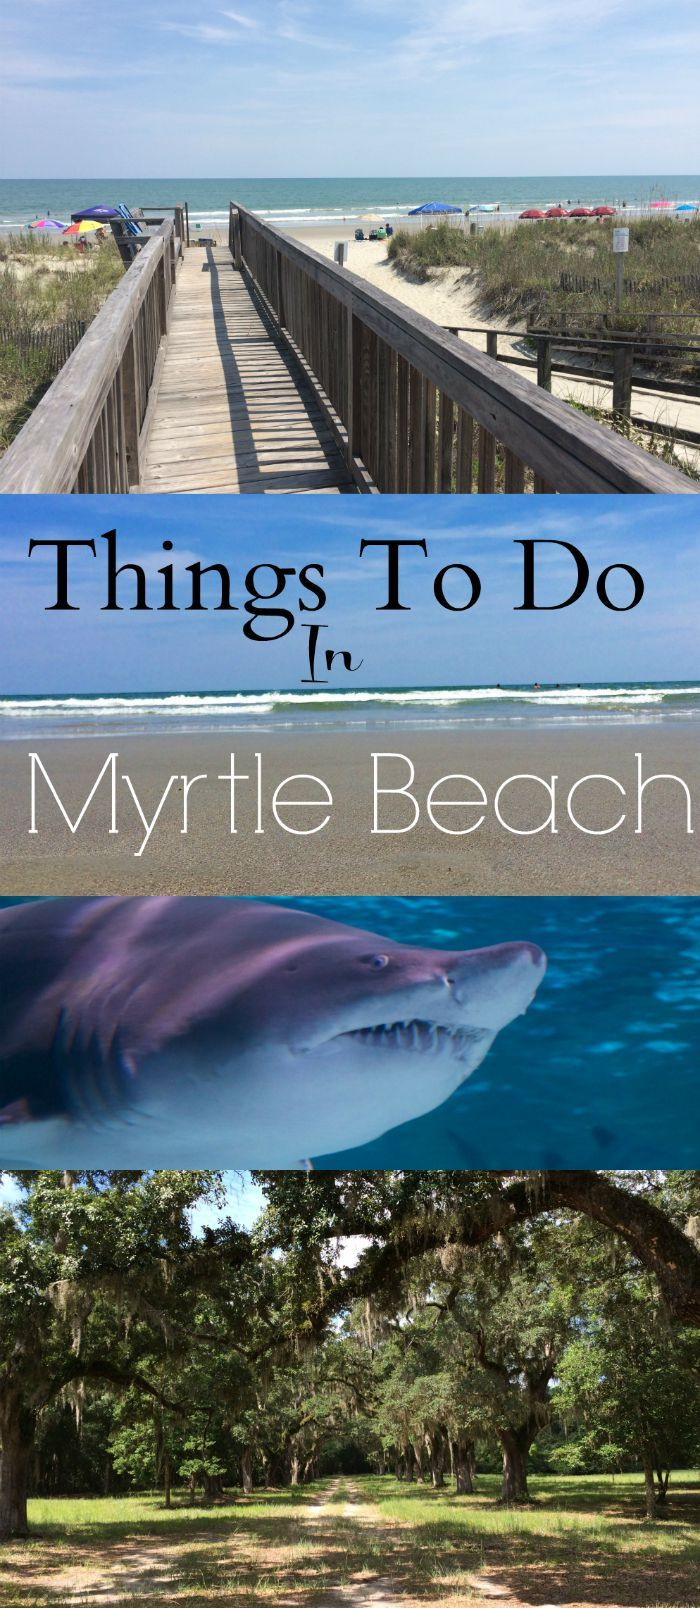 Things To Do In Myrtle Beach South Carolina Myrtle beach